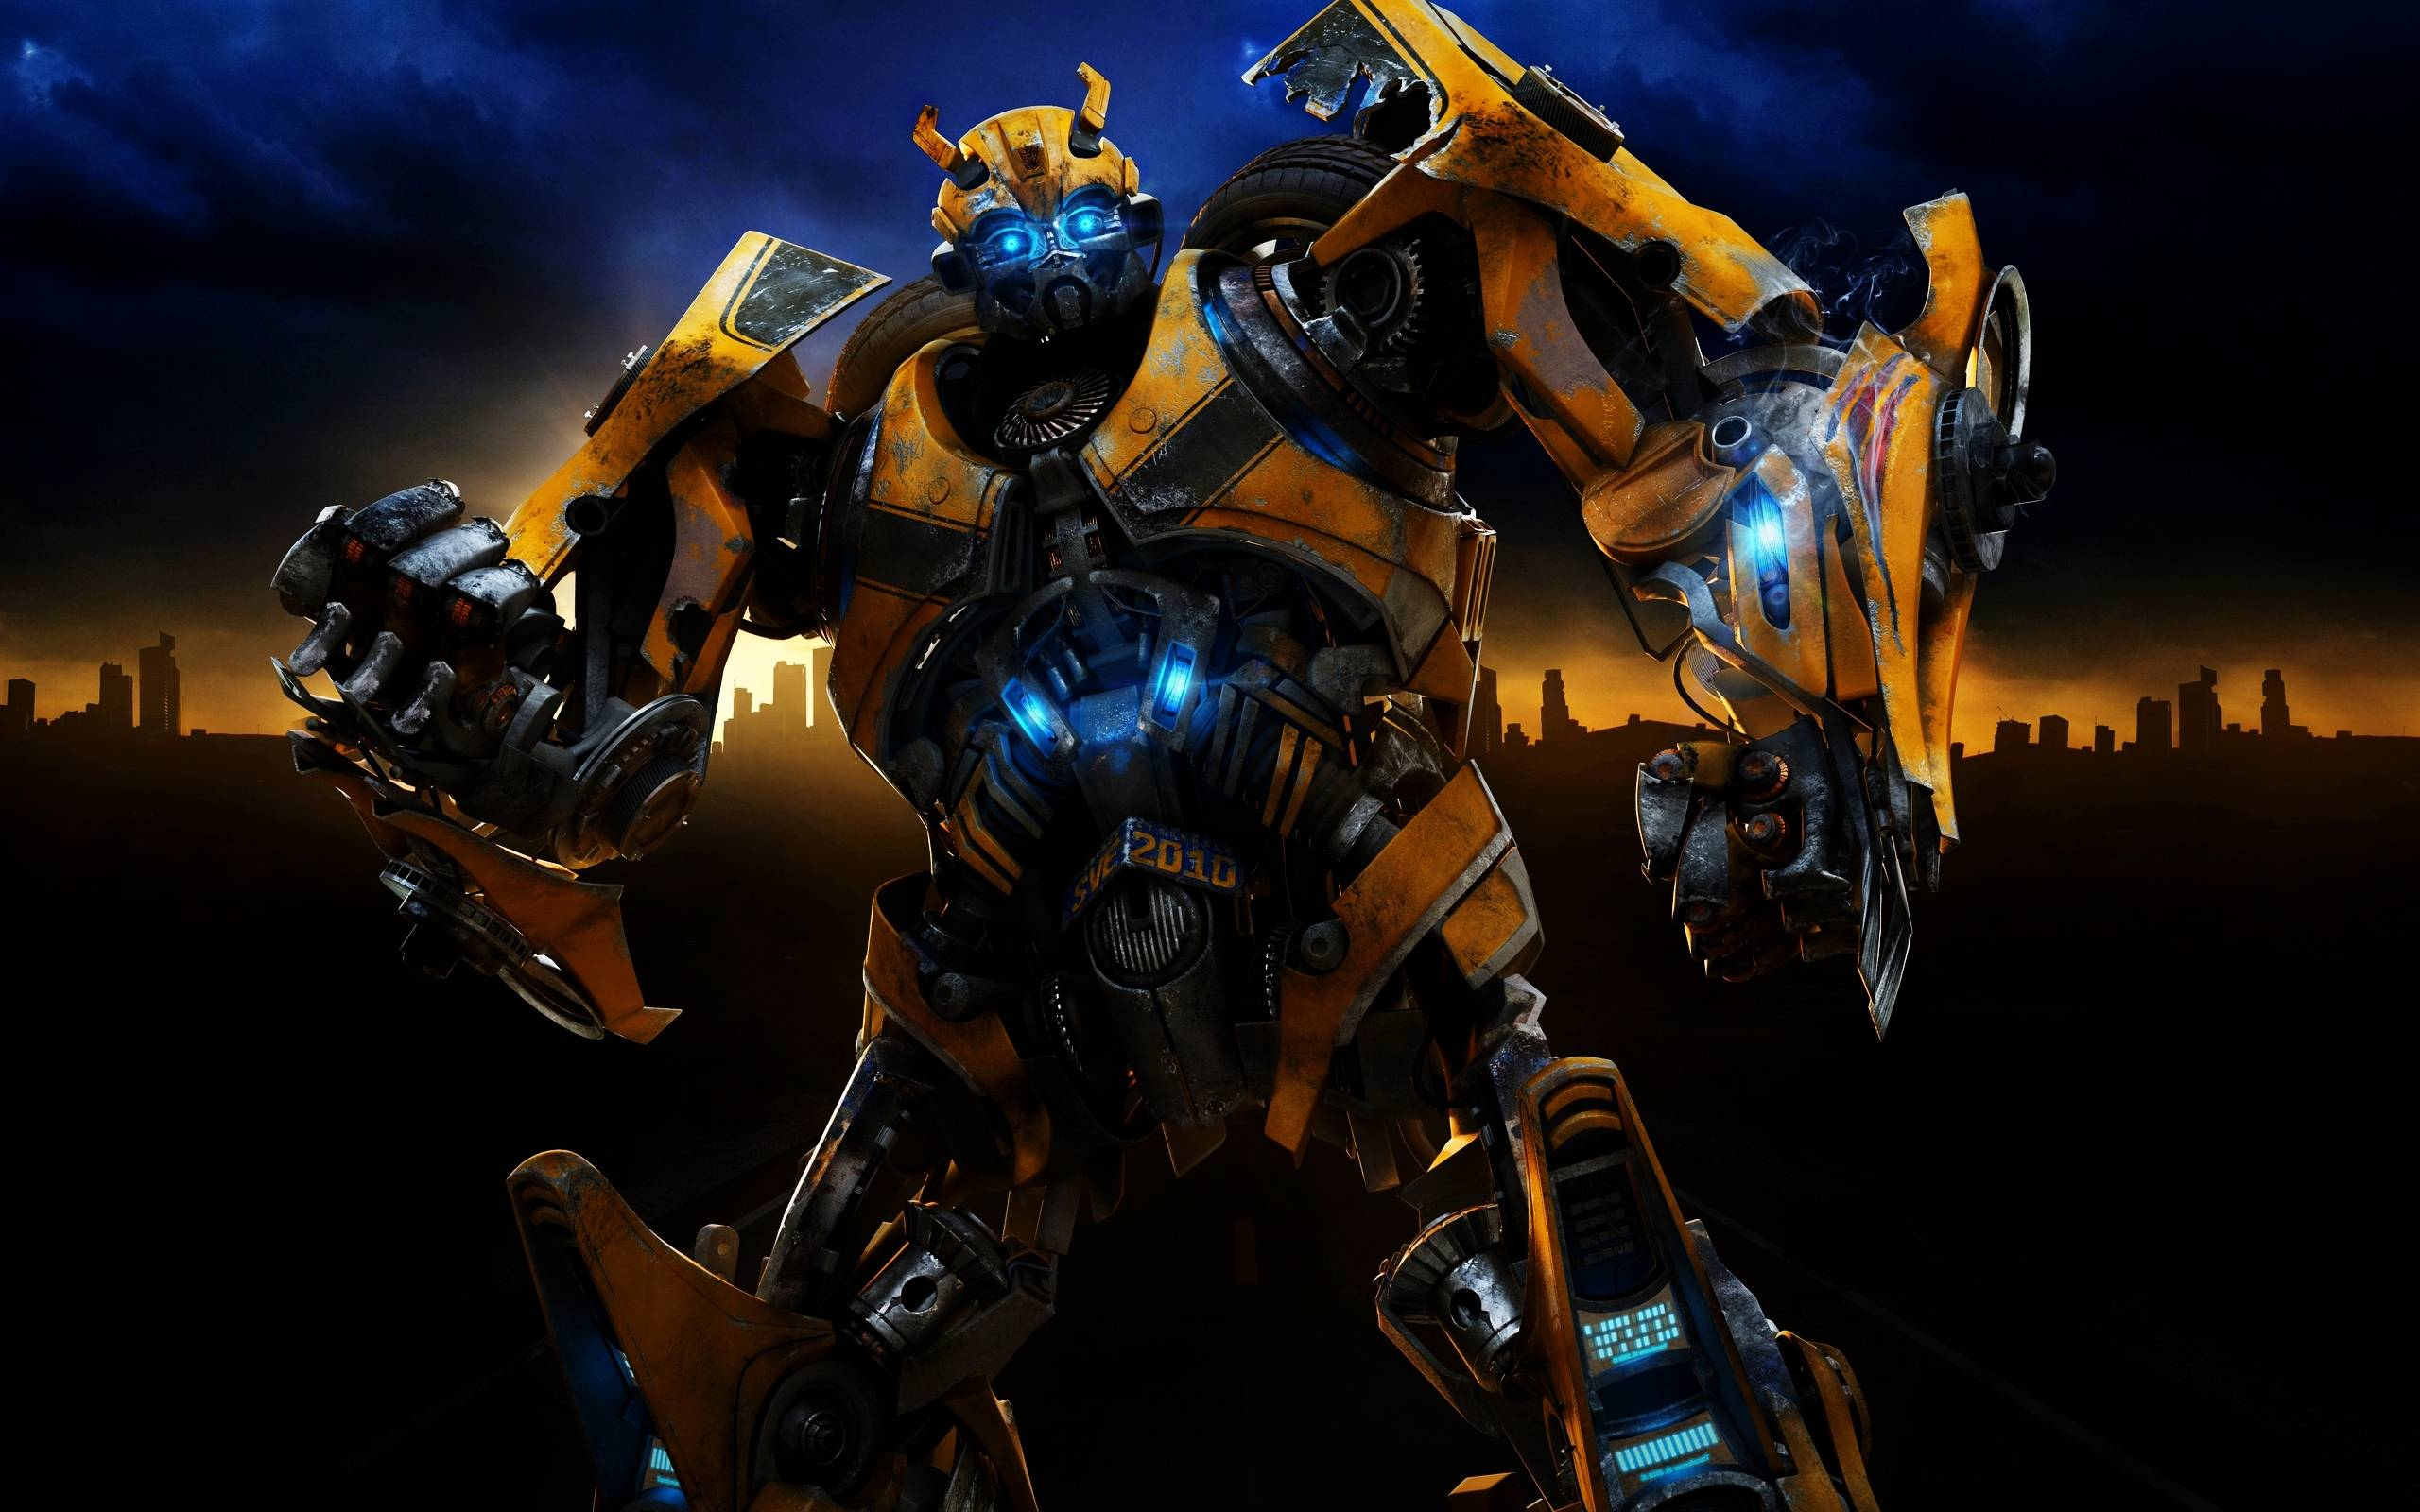 autobot wallpapers full hd wallpaper search